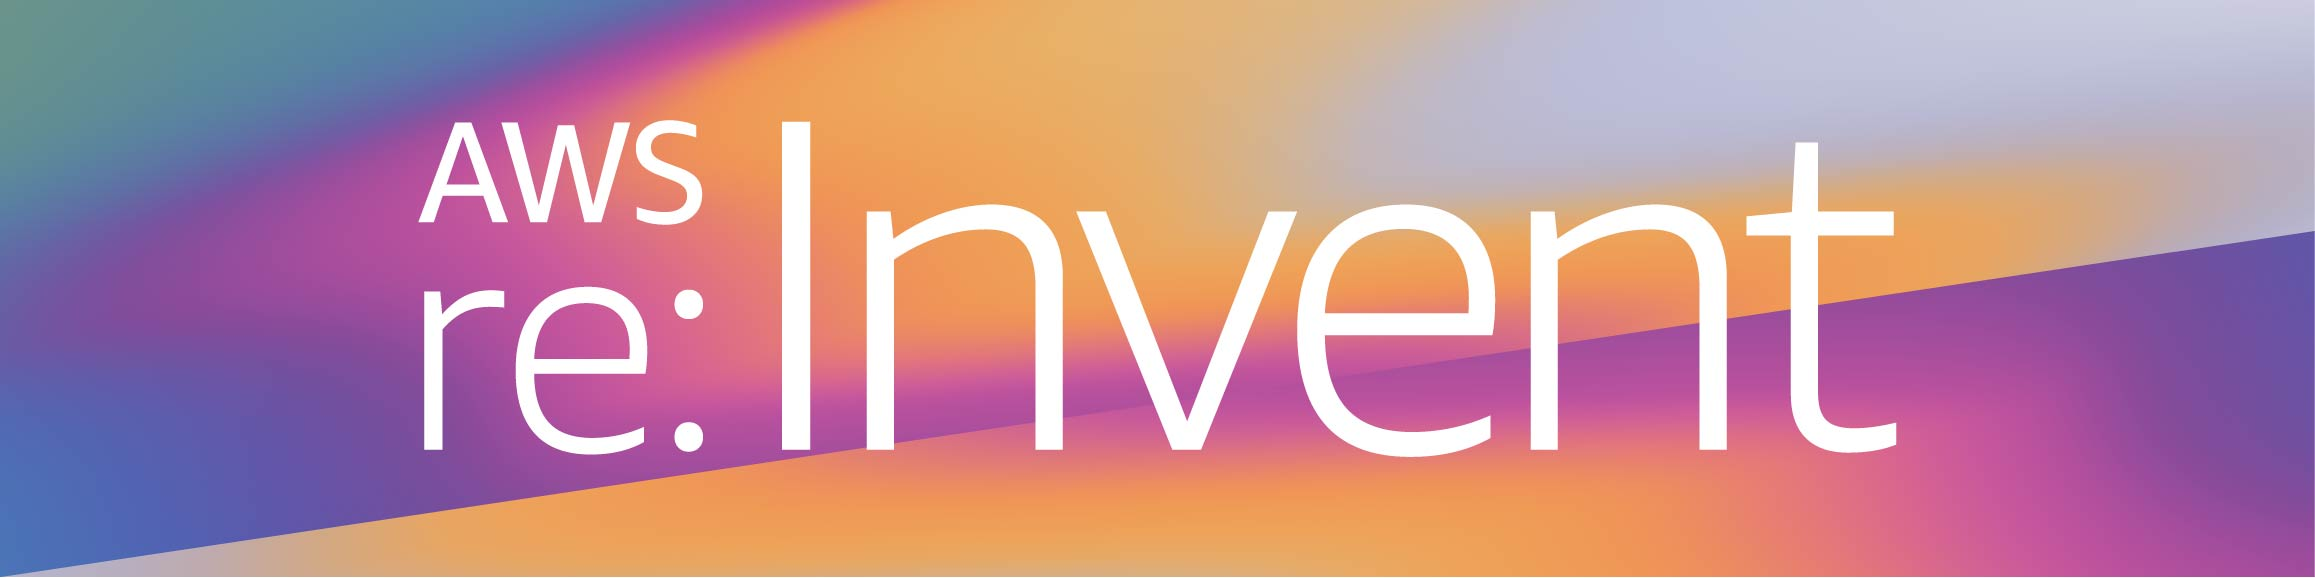 Can't-miss Serverless Sessions for re:Invent 2019